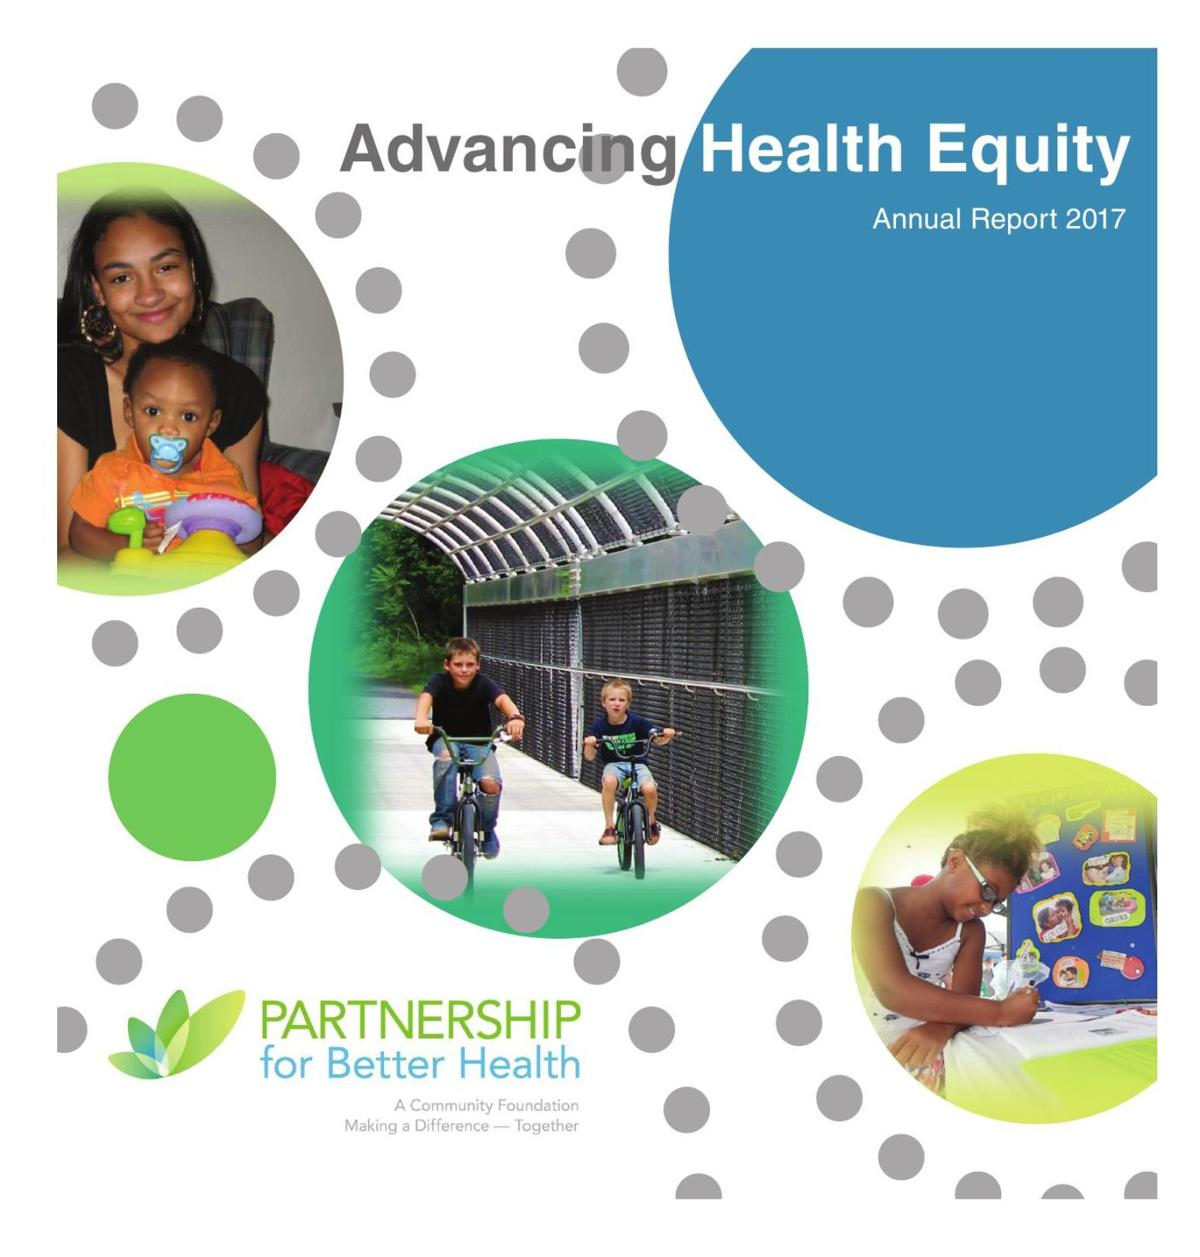 Partnership For Better Health Annual Report 2017